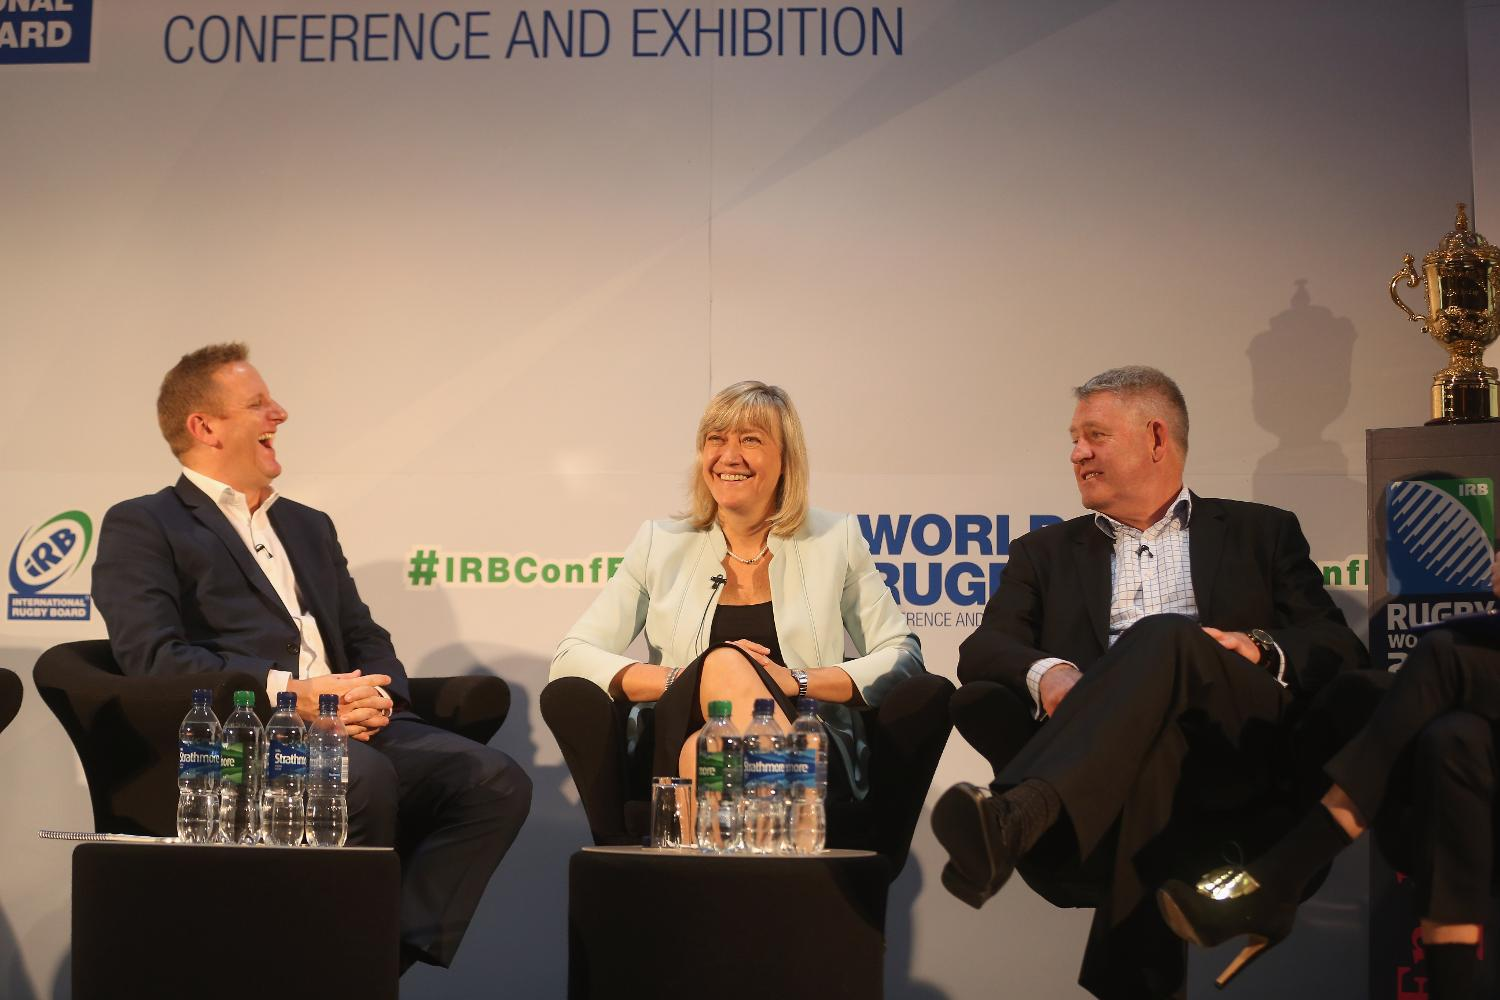 ConfEx 2014 RWC Panel Session